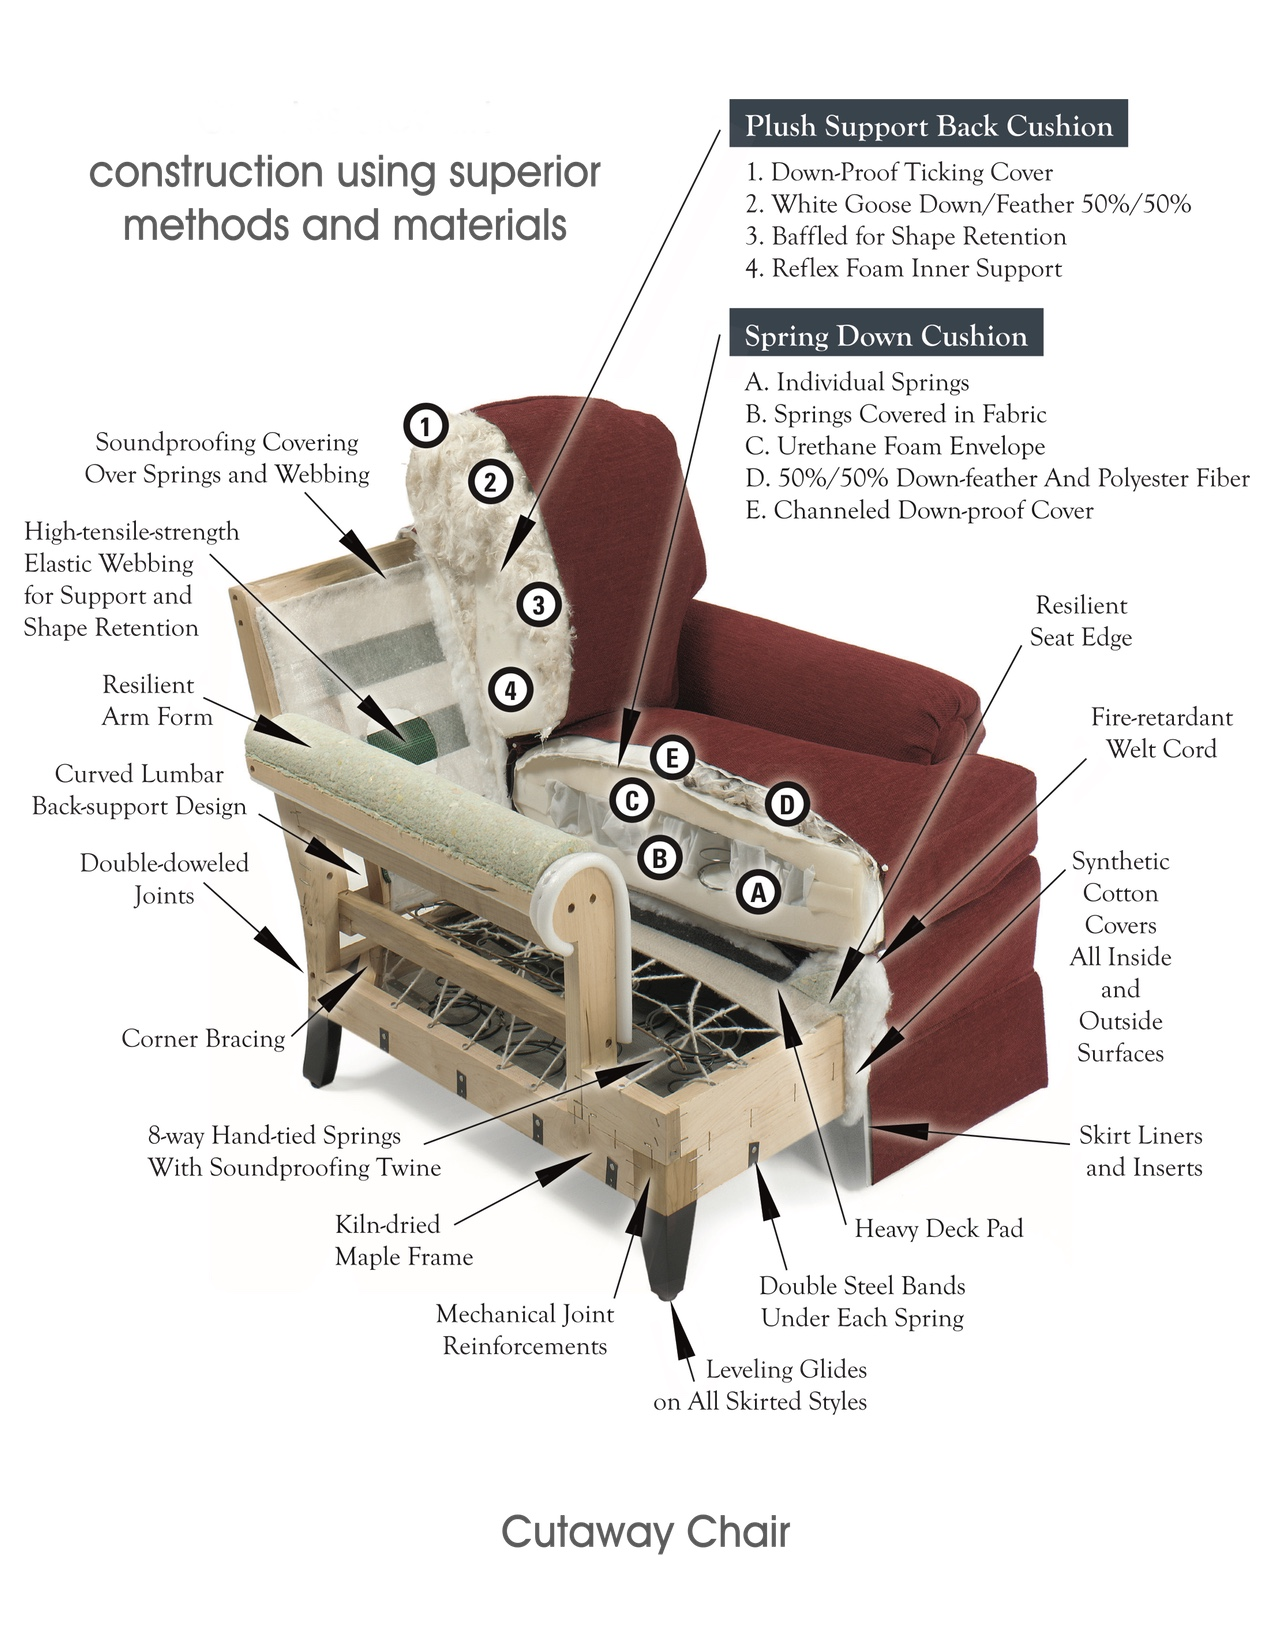 cutaway-chair-construction.jpg